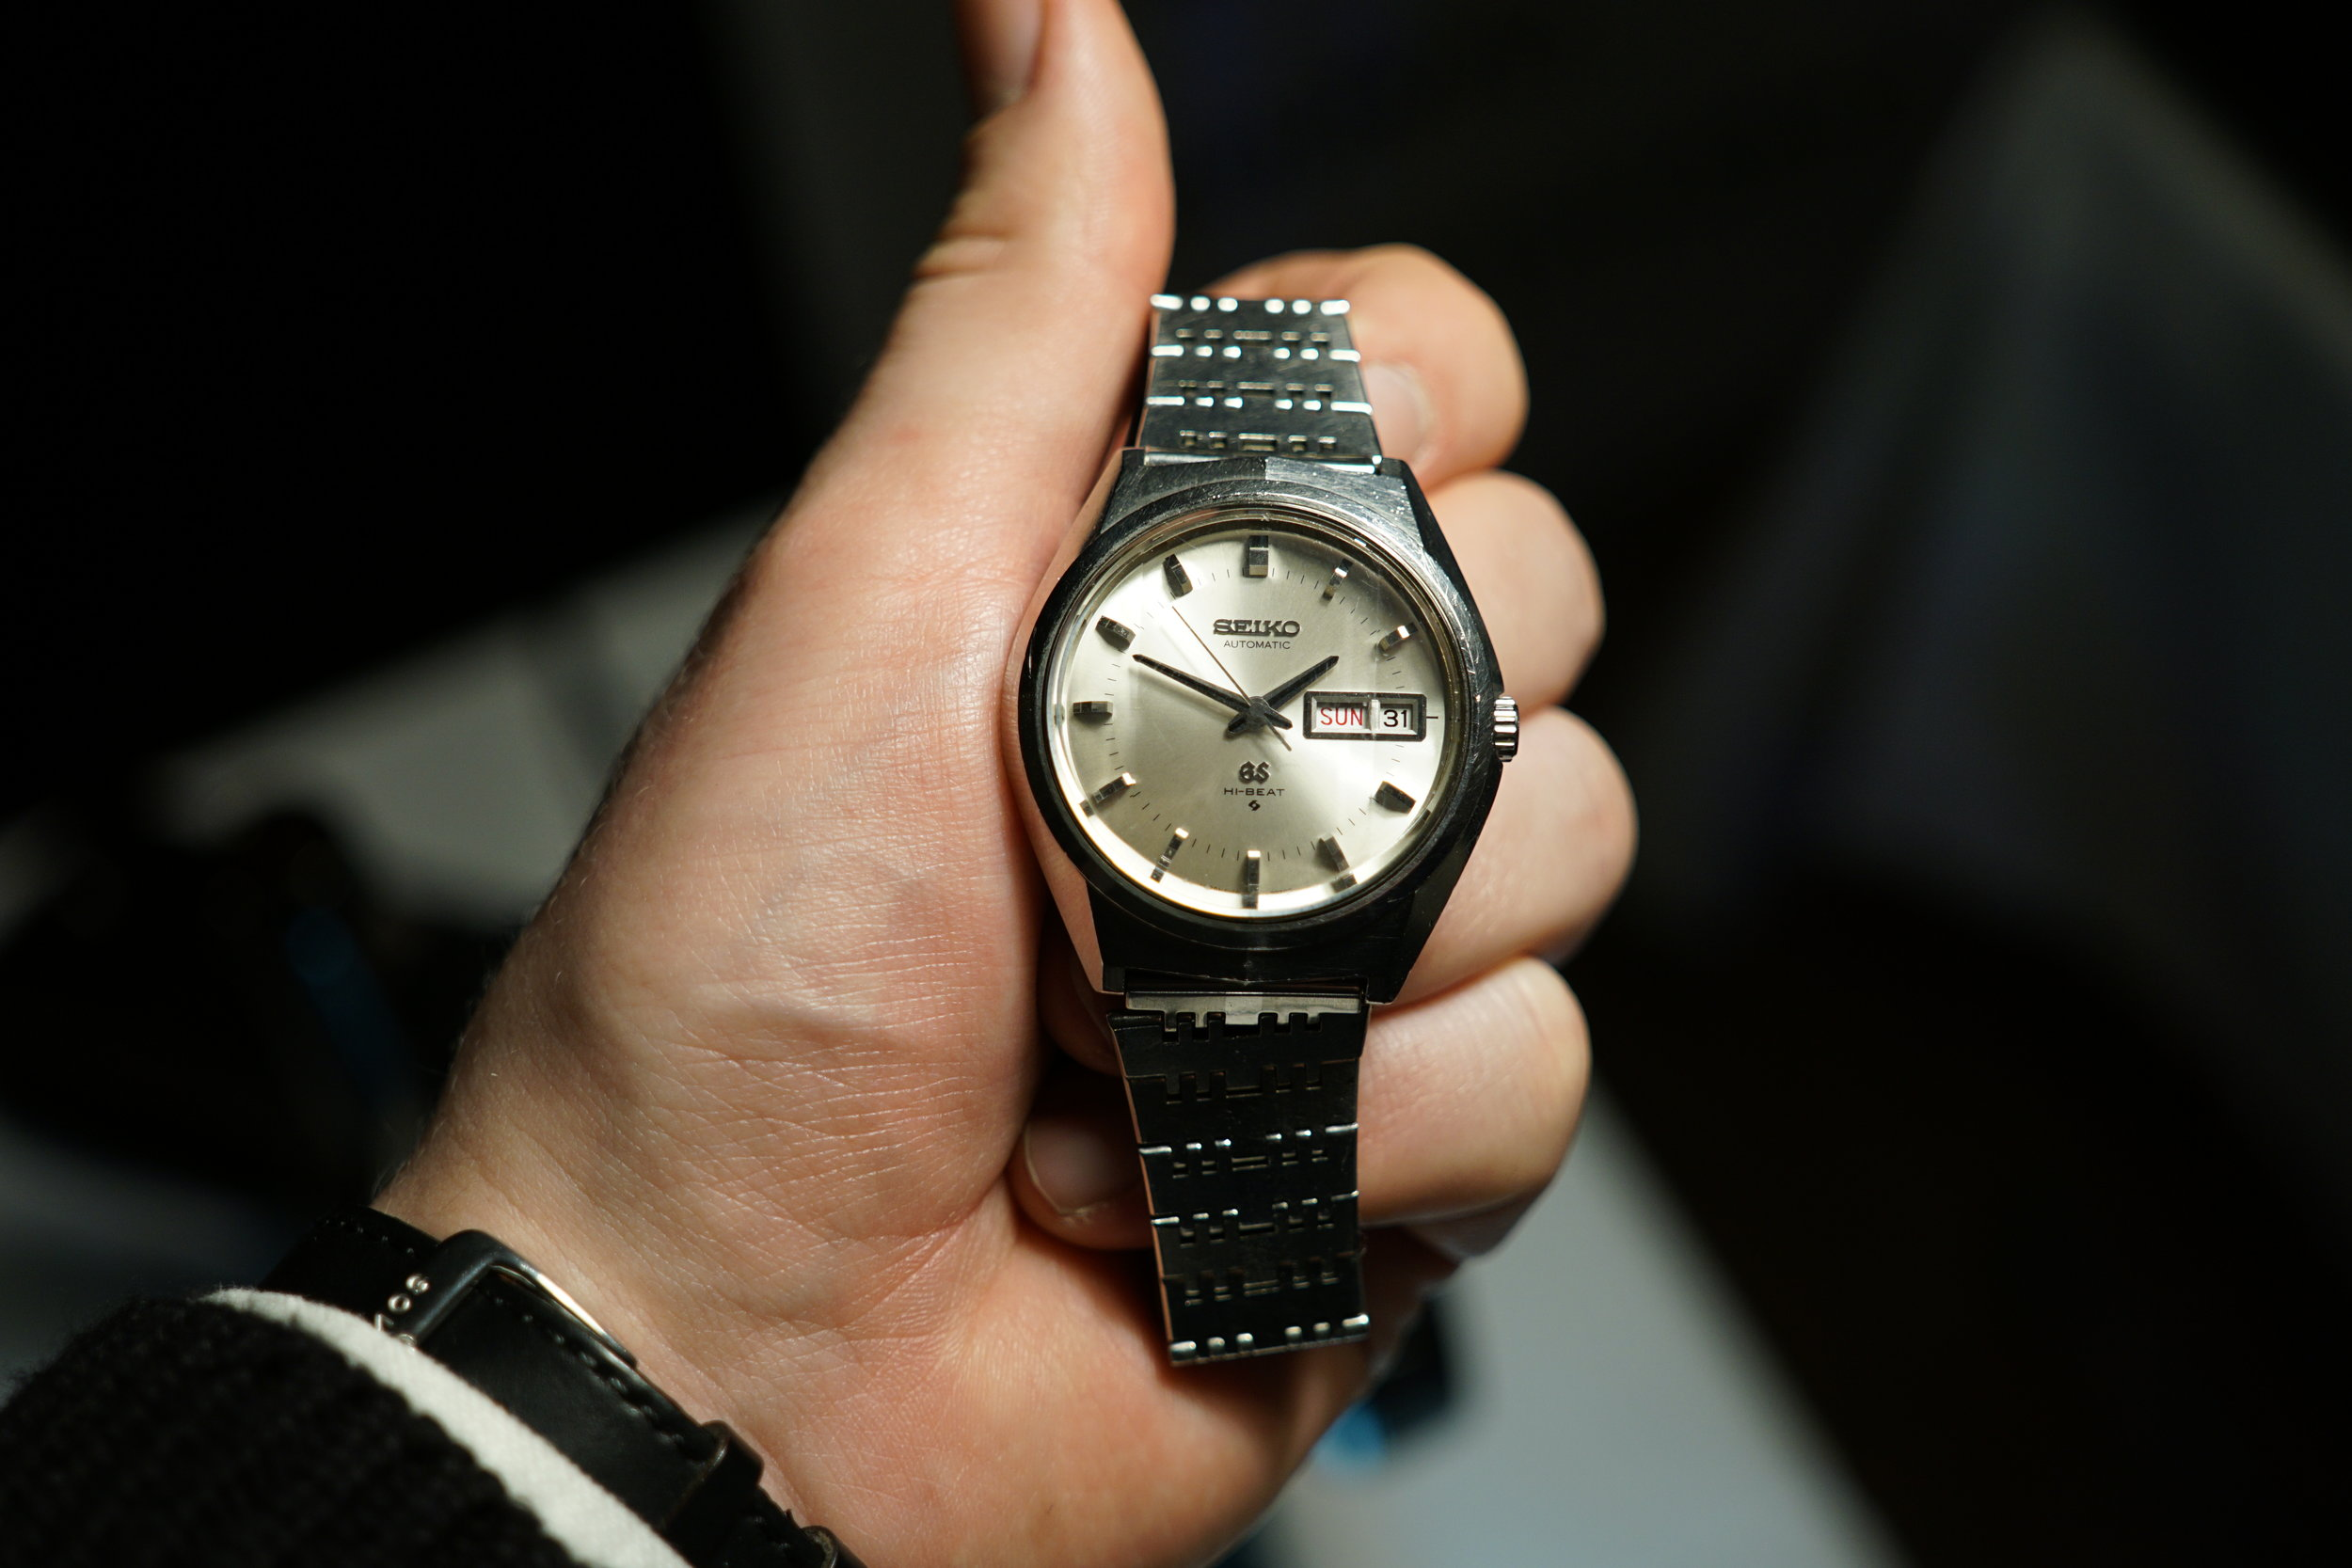 This vintage Grand Seiko ref. 6146-8050 had a really cool chiseled crystal. You can't really see it here, but it was shaped like a polished diamond.